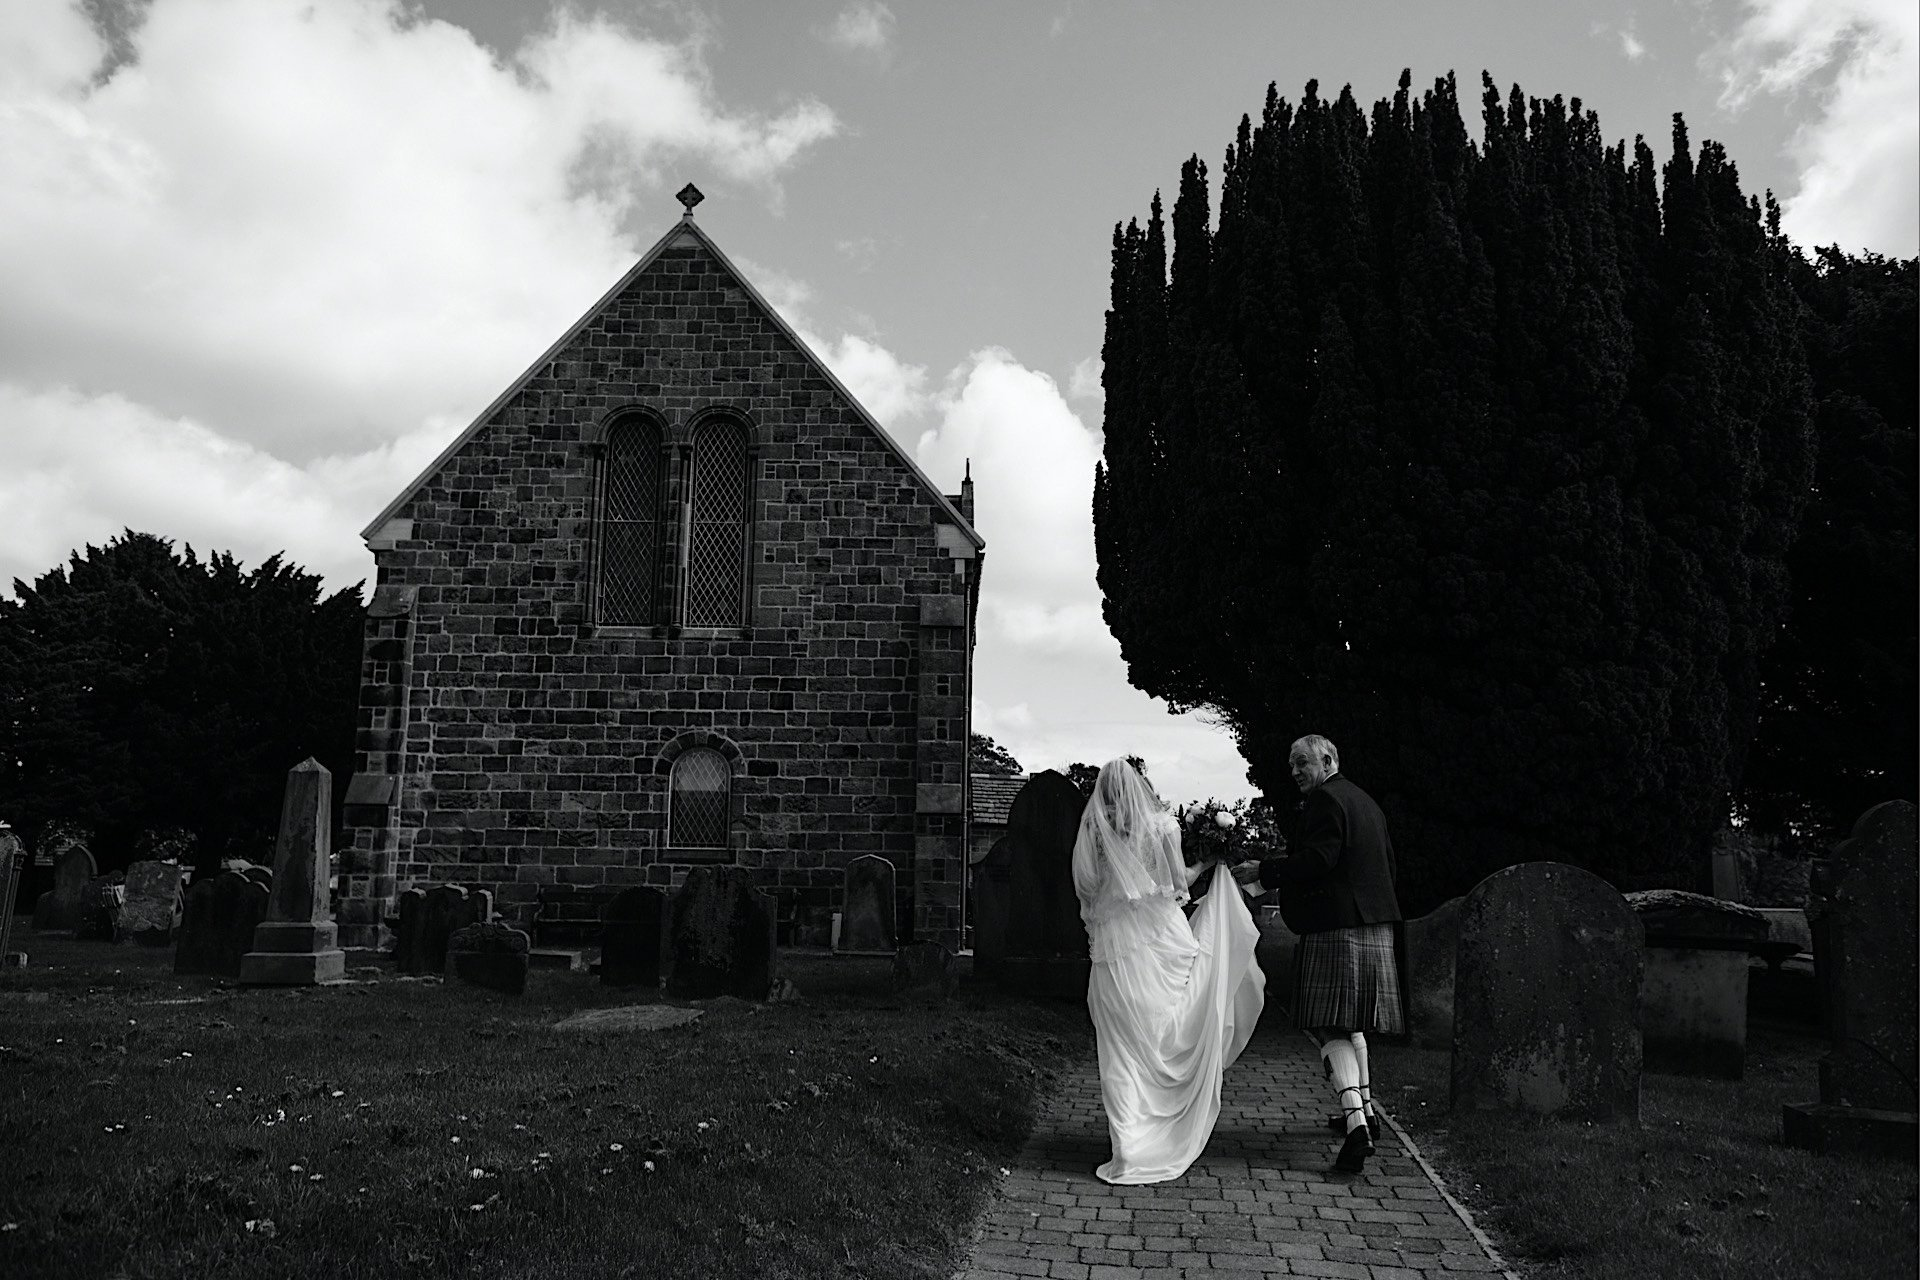 church bride to Walking and father